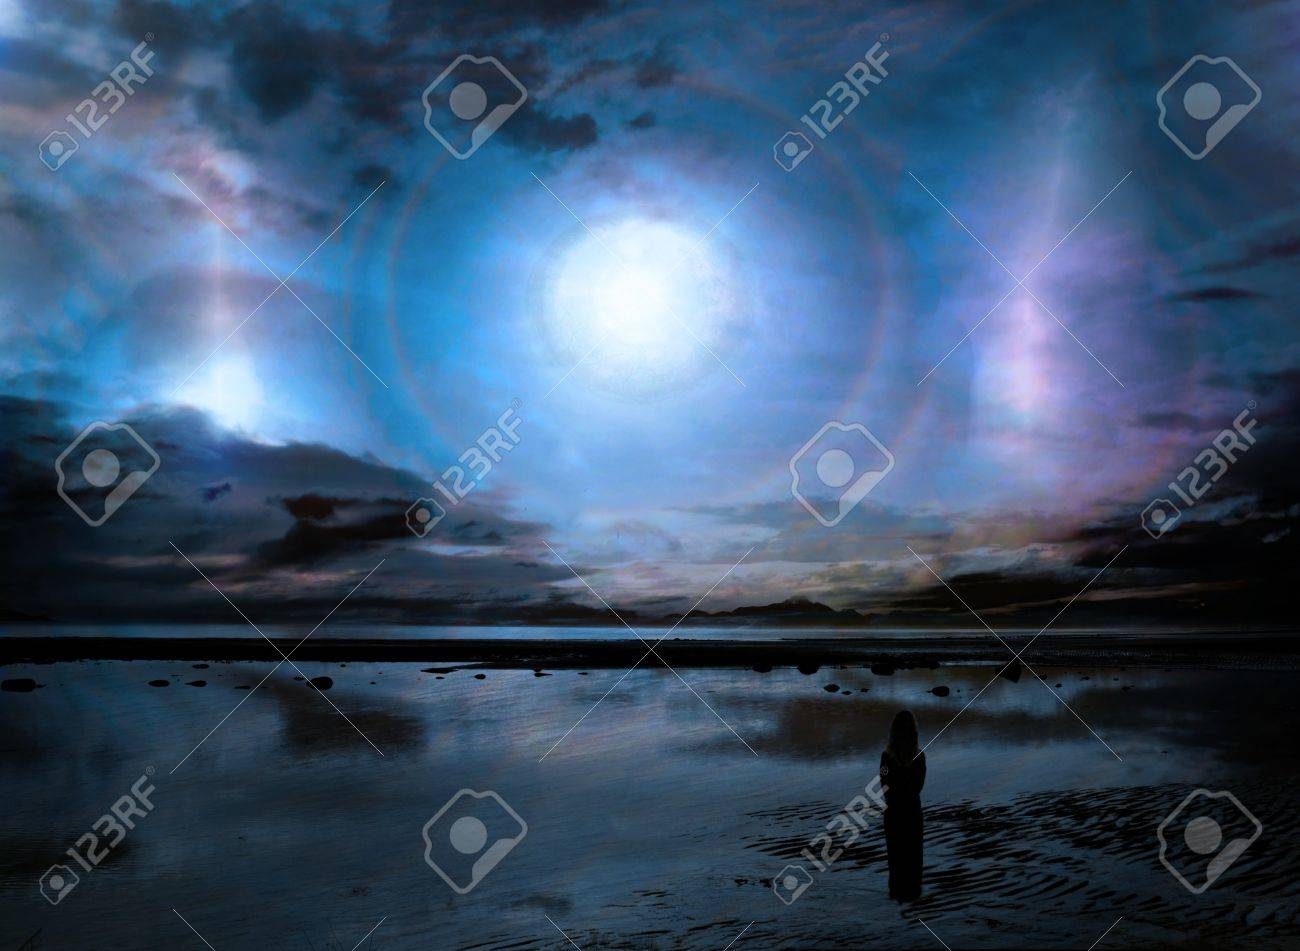 Surreal fantasy scene with a strange light phenomenon in the sky over a beach landscape and a woman in silhouette looking out at it. Stock Photo - 13447012